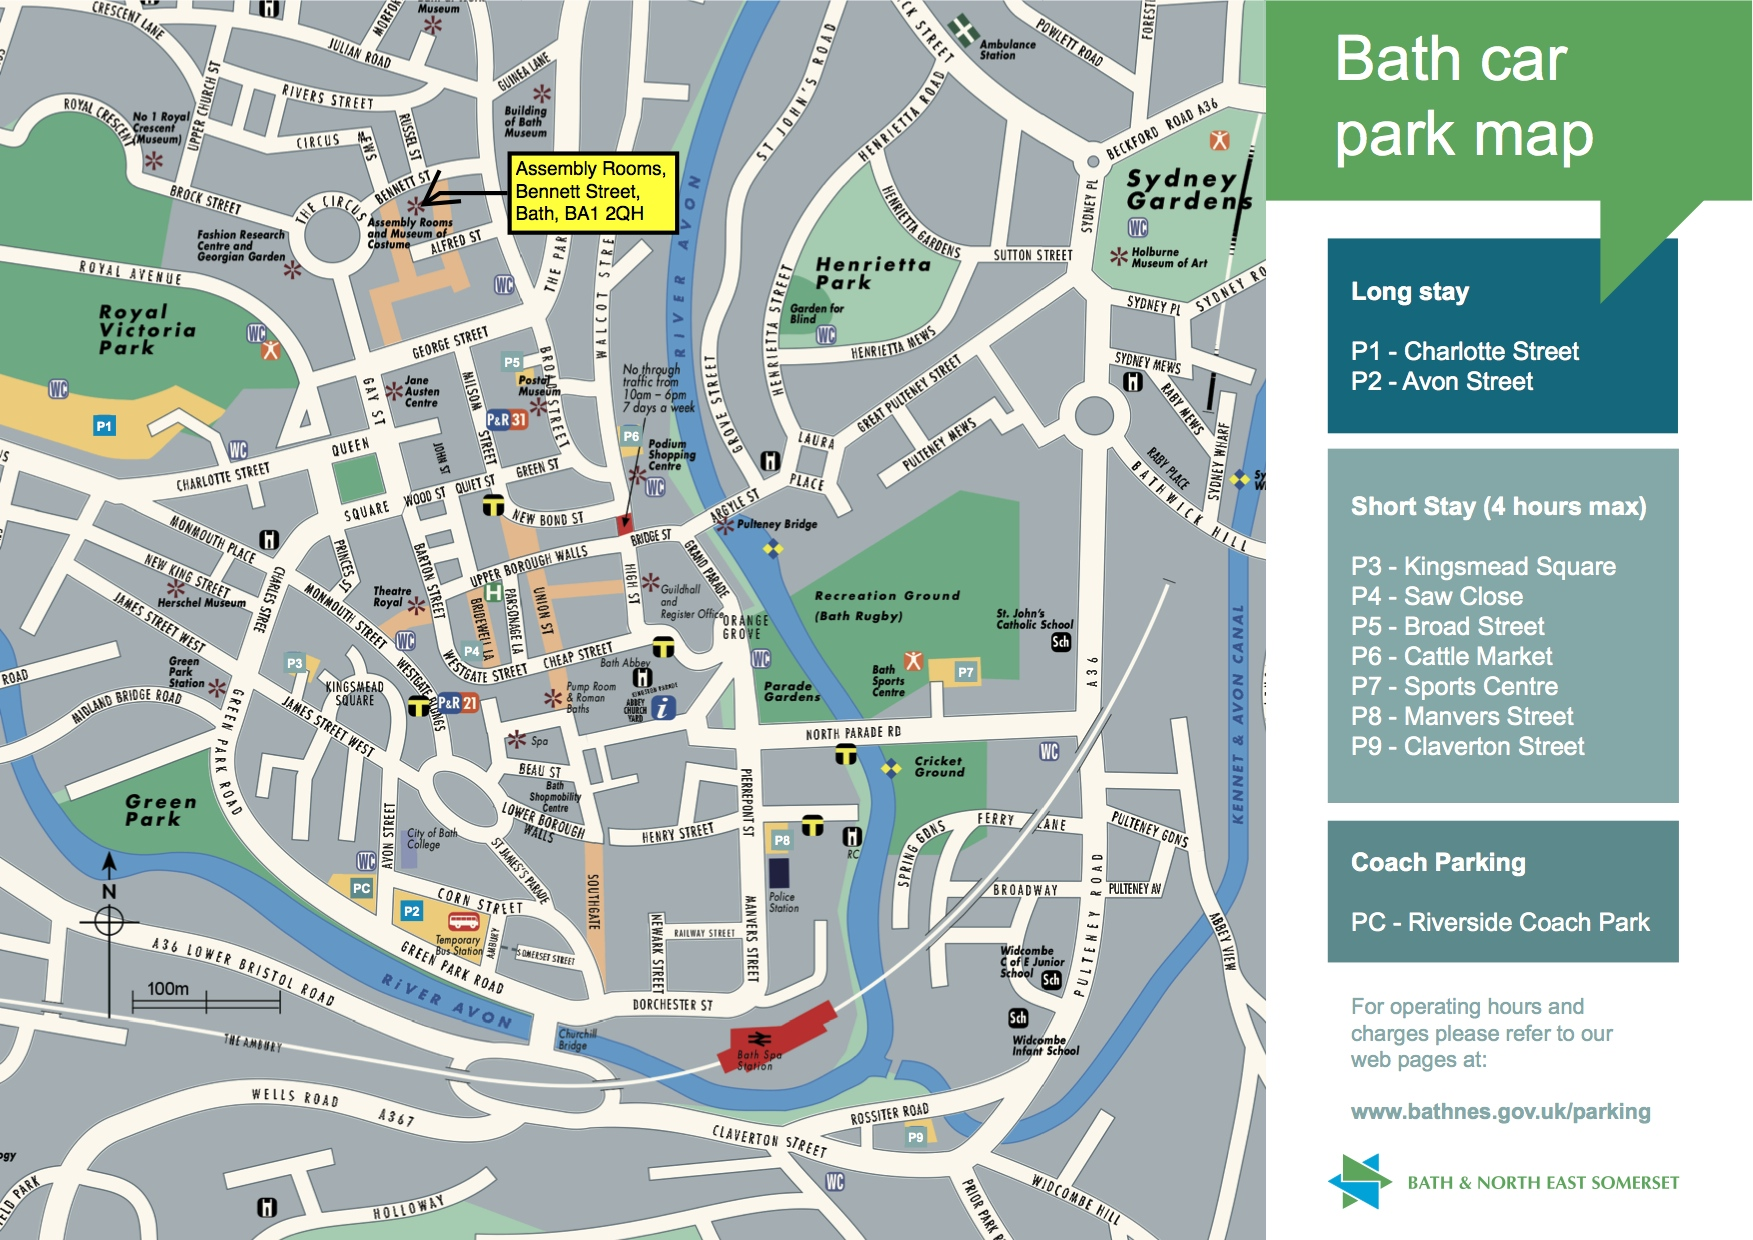 Minister for cities to attend Bath conference on LEP progress